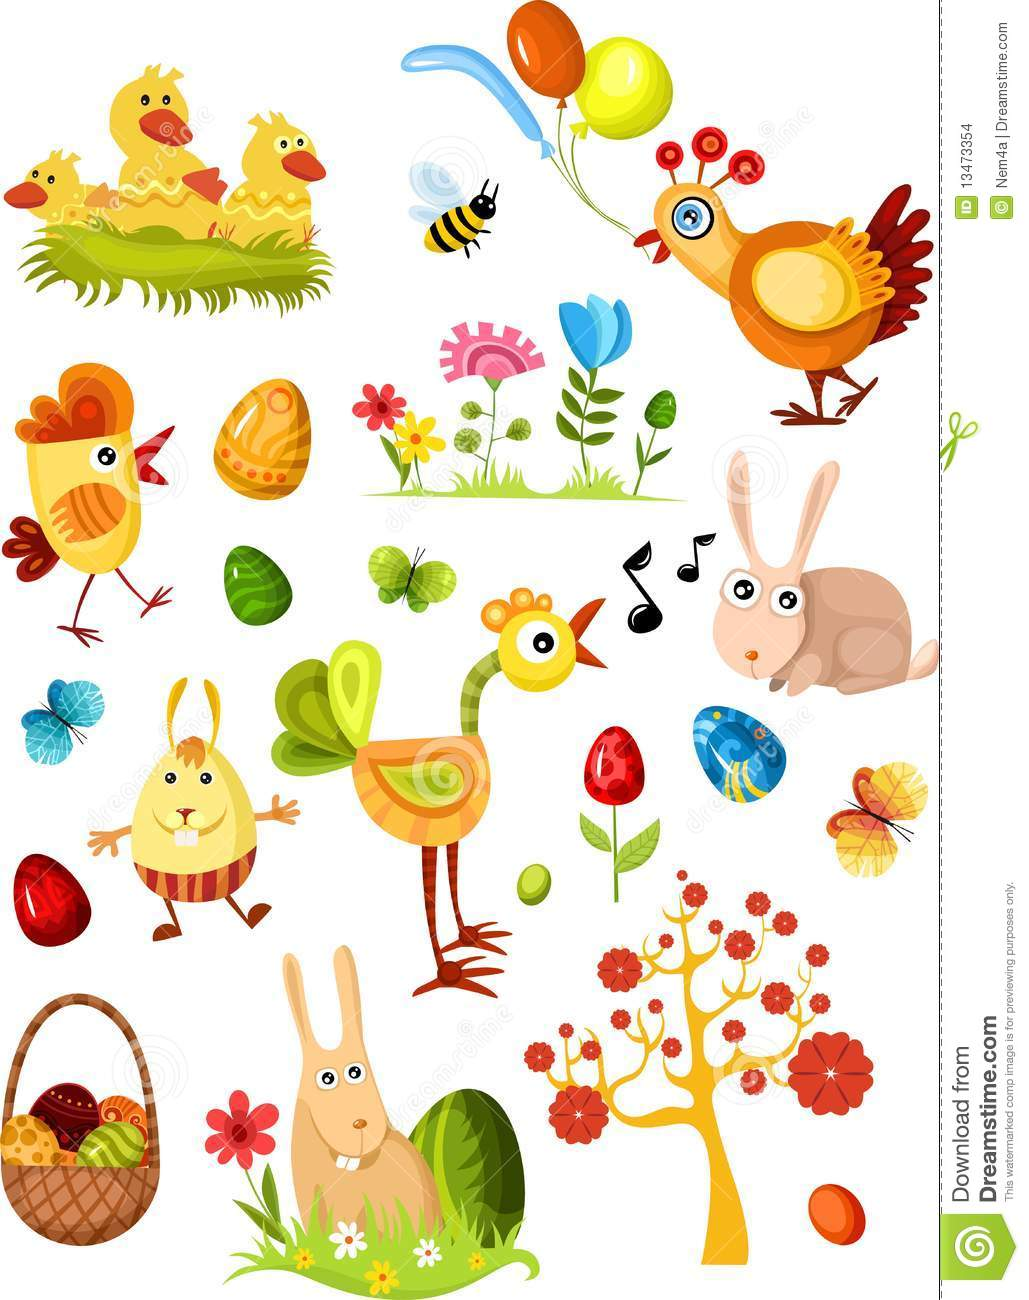 Download Big easter set new stock vector. Illustration of herb - 13473354